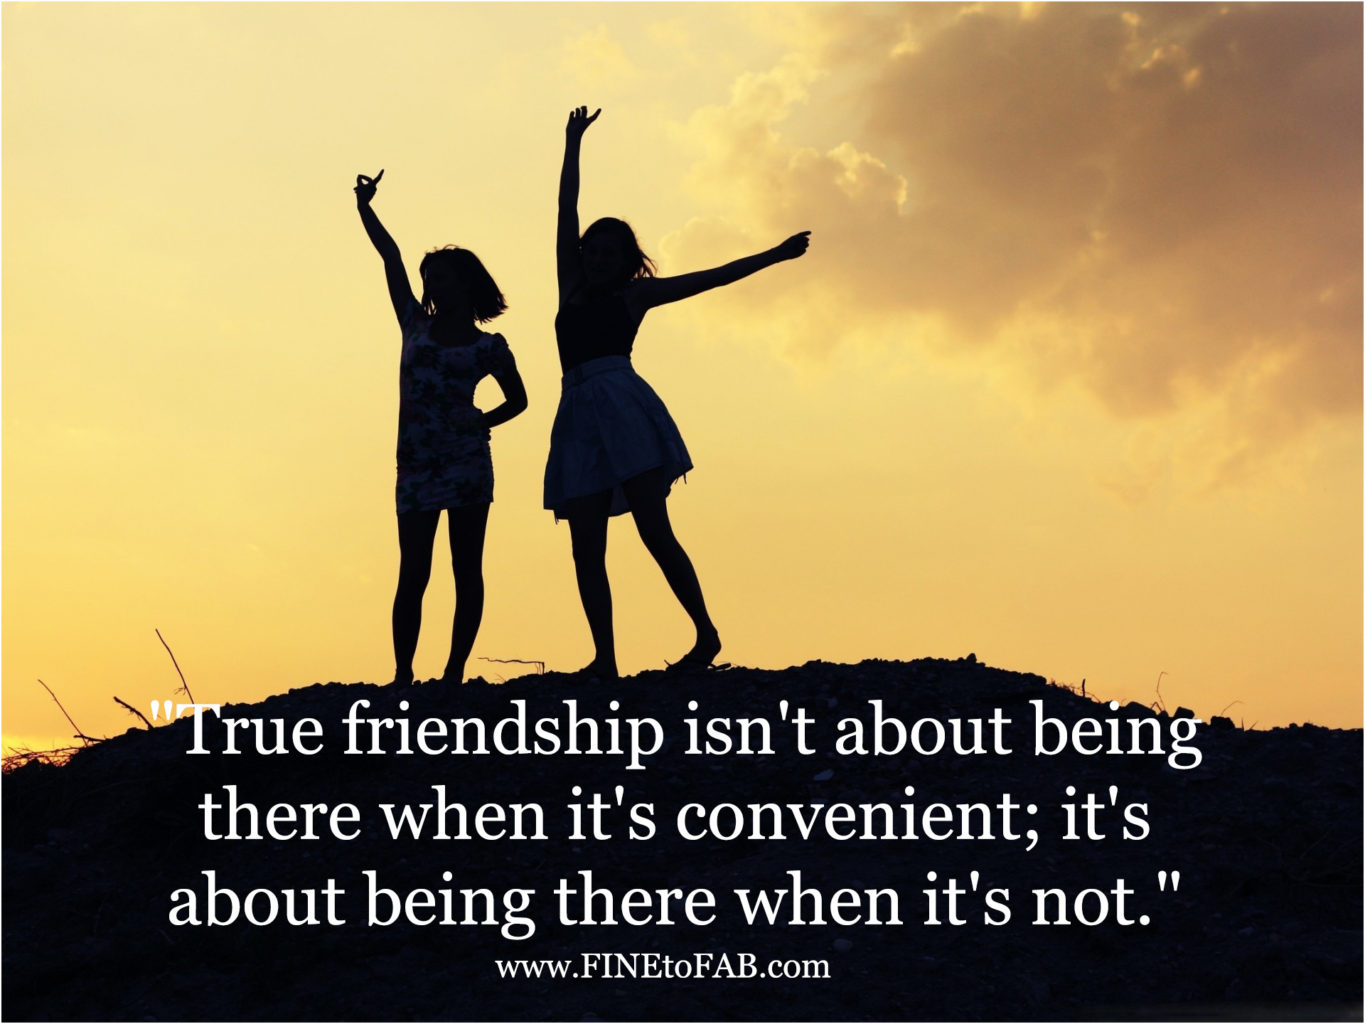 25 Inspirational Friendship Quotes That You Must Share ...